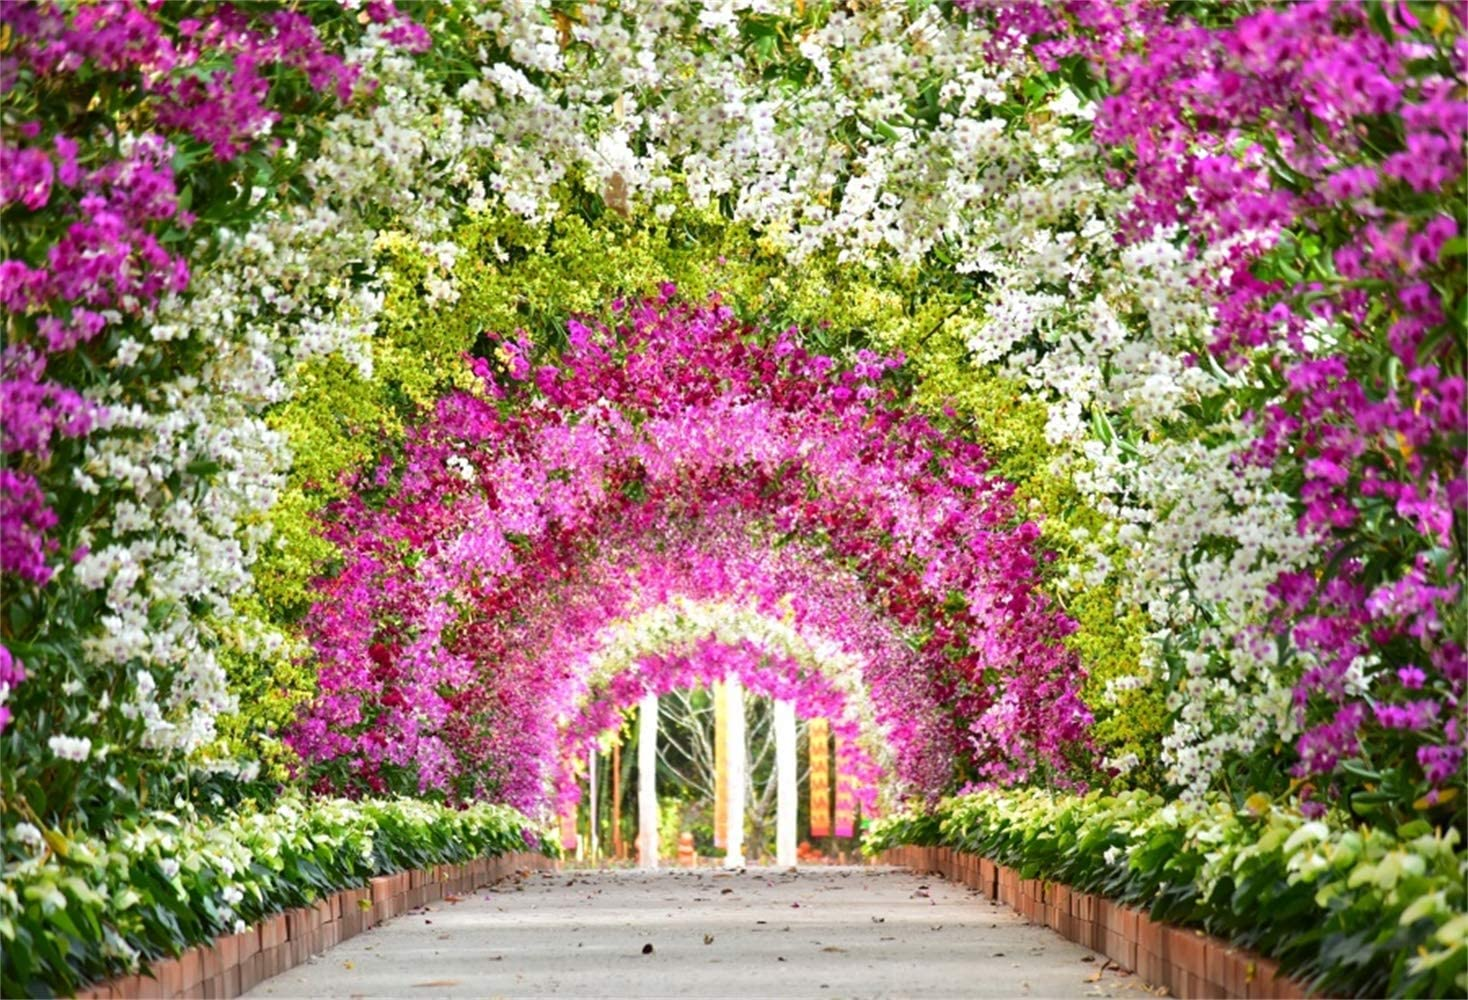 GoEoo Fabulous Colorful Floral Archway Backdrop 10x7ft Vinyl Beautiful Flowers Summer Garden Scenery Background Wedding Celebration Party Banner Bridal Shower Bride Groom Shoot Wallpaper